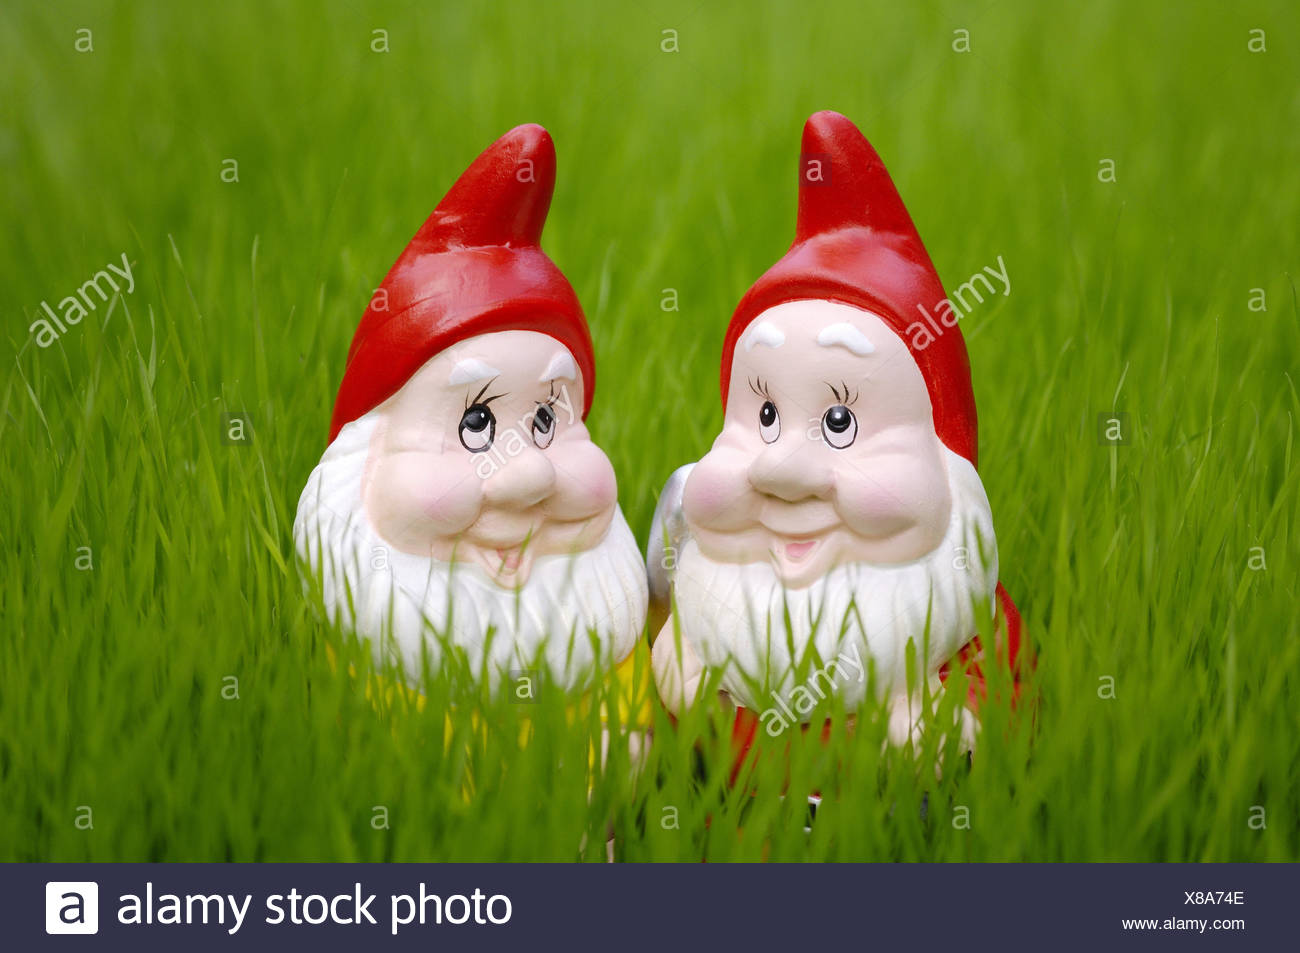 Garden gnomes, Stock Photo